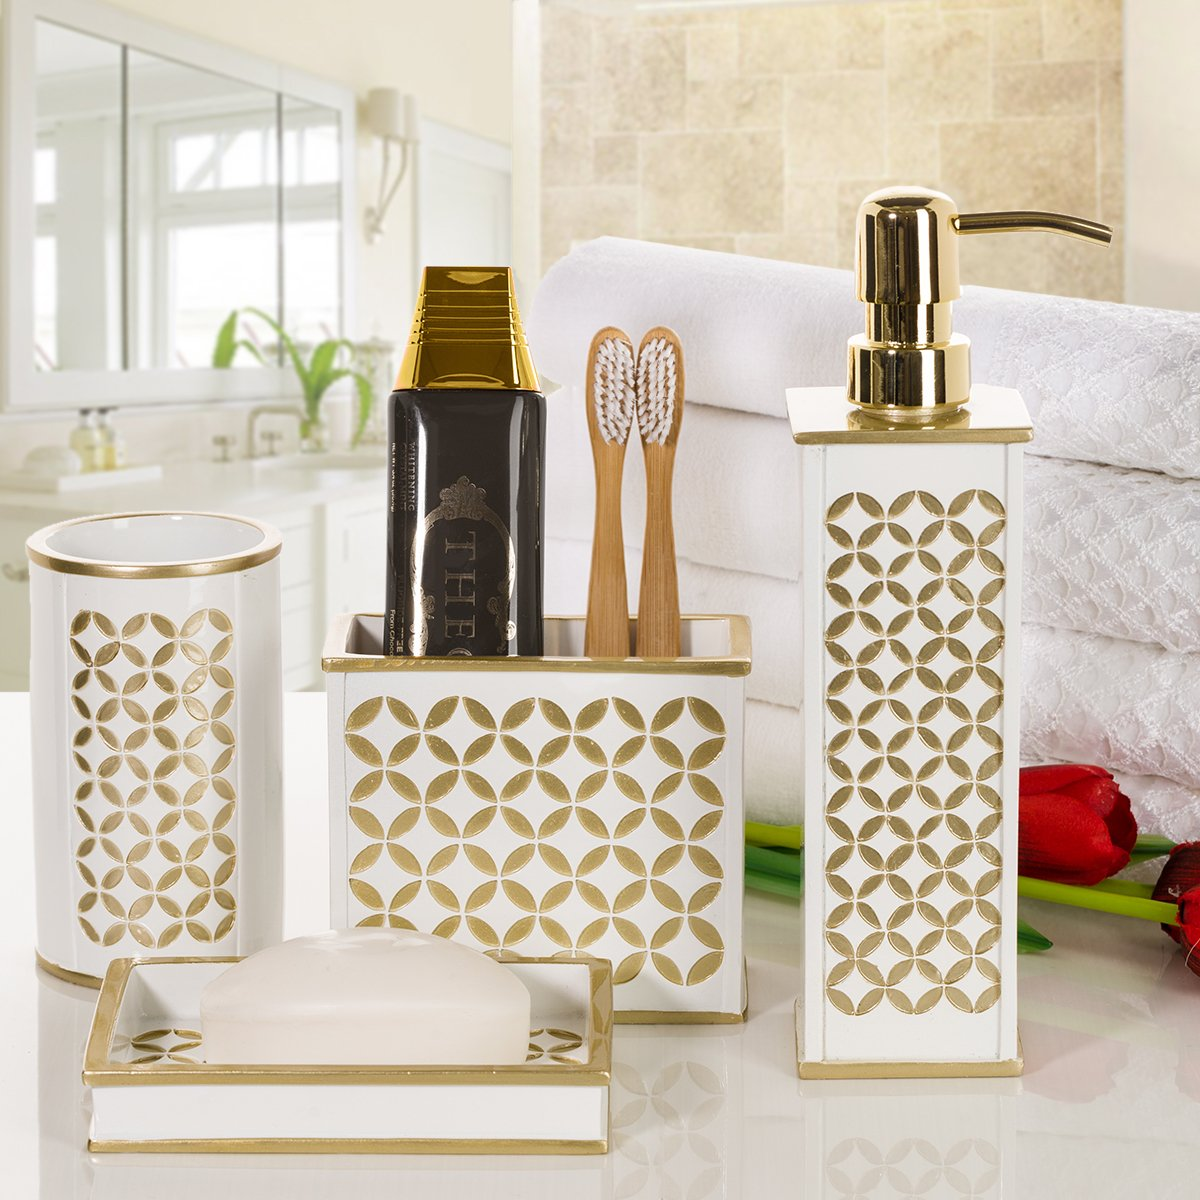 Amazon.com: Diamond Lattice 4Pc Bath Accessory Sets- Decorative ...